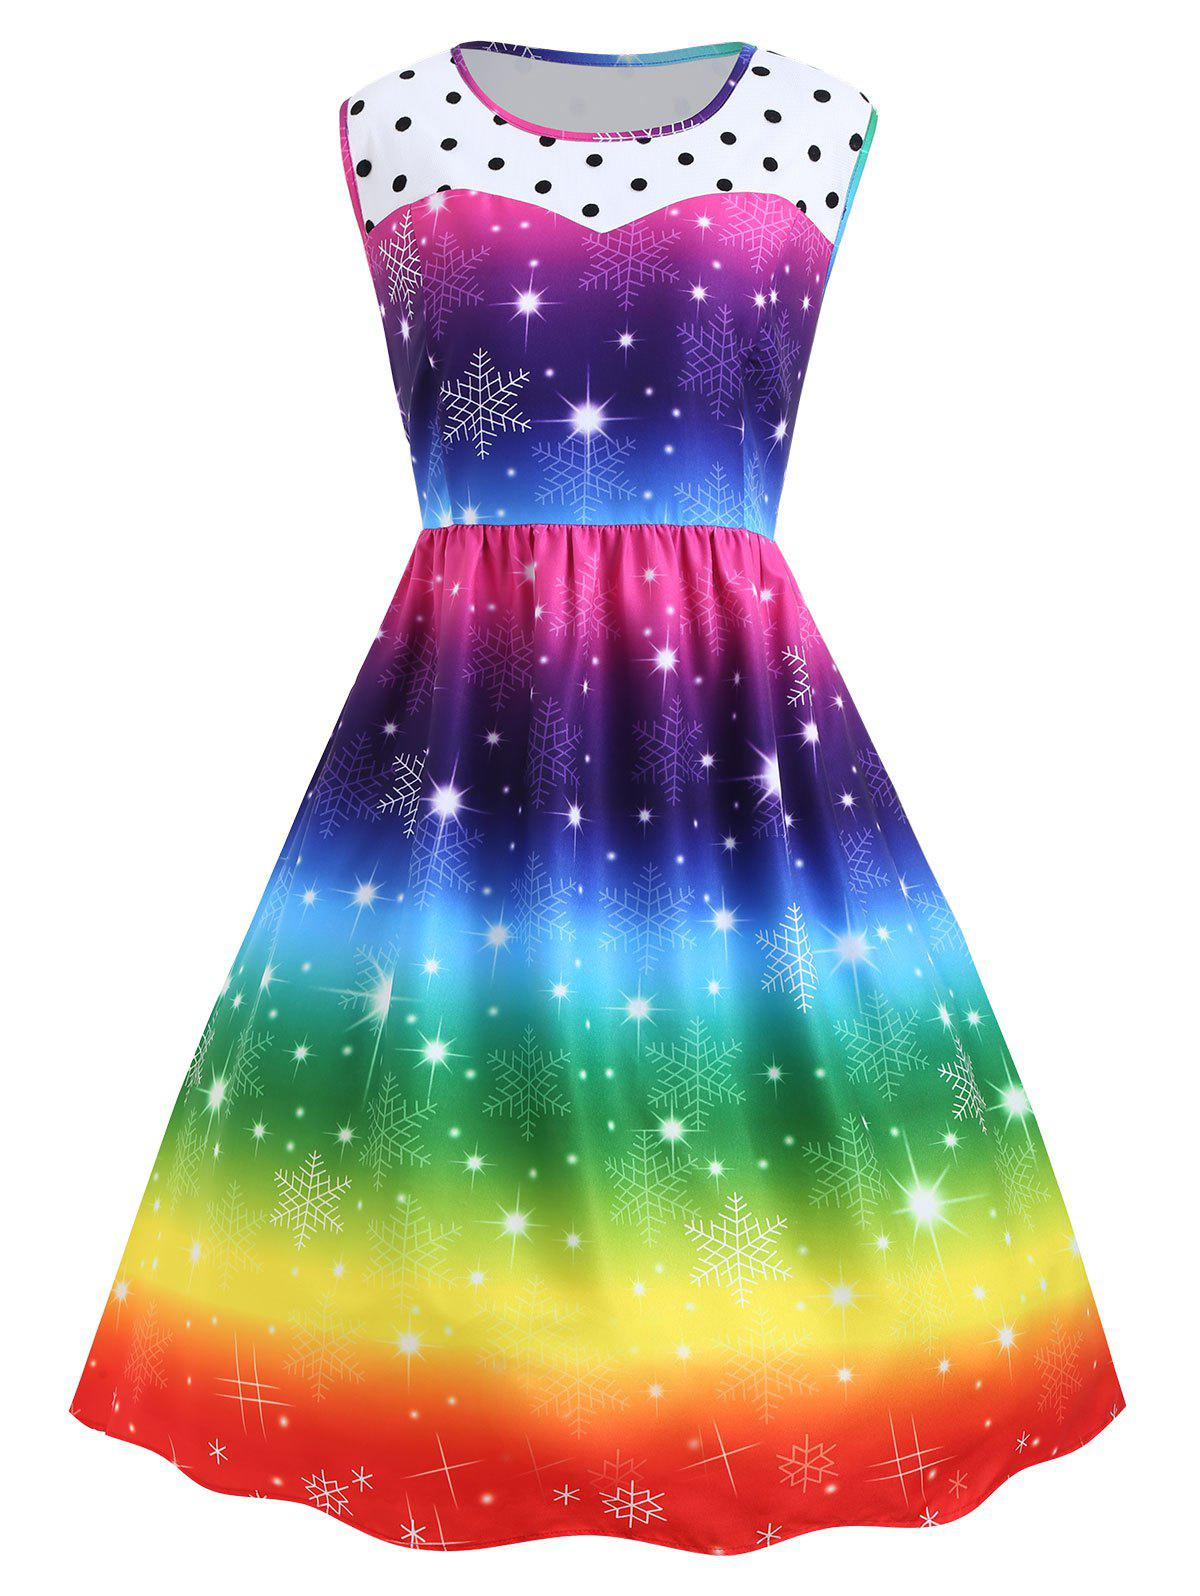 Plus Size Christmas Snowflake Rainbow Color Vintage DressWOMEN<br><br>Size: 4XL; Color: COLORFUL; Style: Cute; Material: Polyester; Silhouette: Ball Gown; Dresses Length: Mid-Calf; Neckline: Round Collar; Sleeve Length: Sleeveless; Waist: High Waisted; Embellishment: Spliced; Pattern Type: Polka Dot,Print; With Belt: No; Season: Fall,Winter; Weight: 0.3300kg; Package Contents: 1 x Dress;